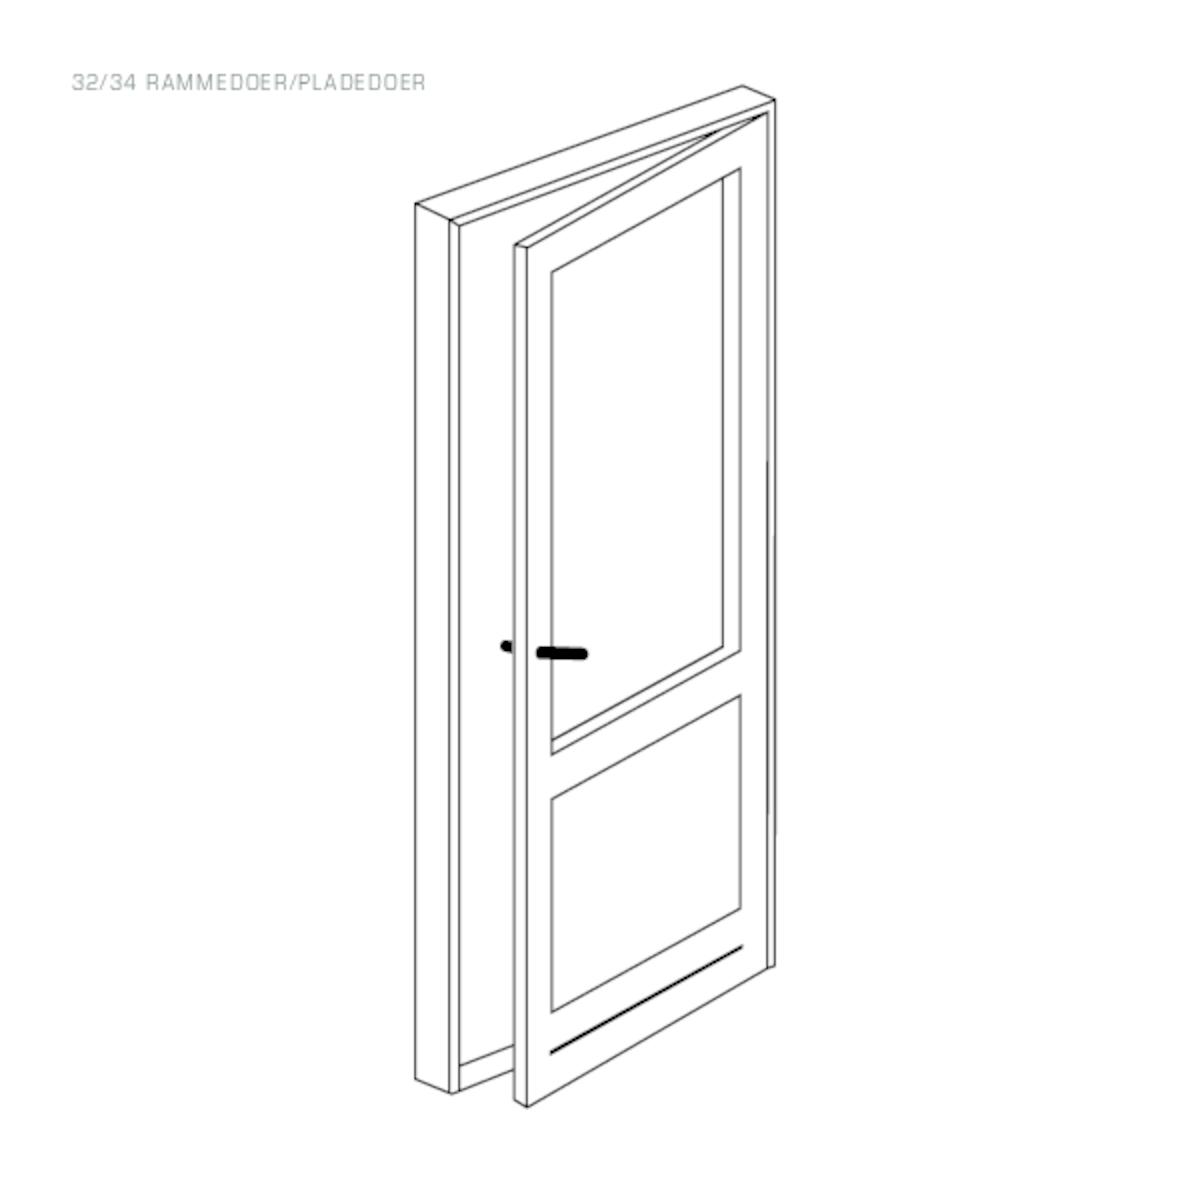 Rationel Entrance Door drawing